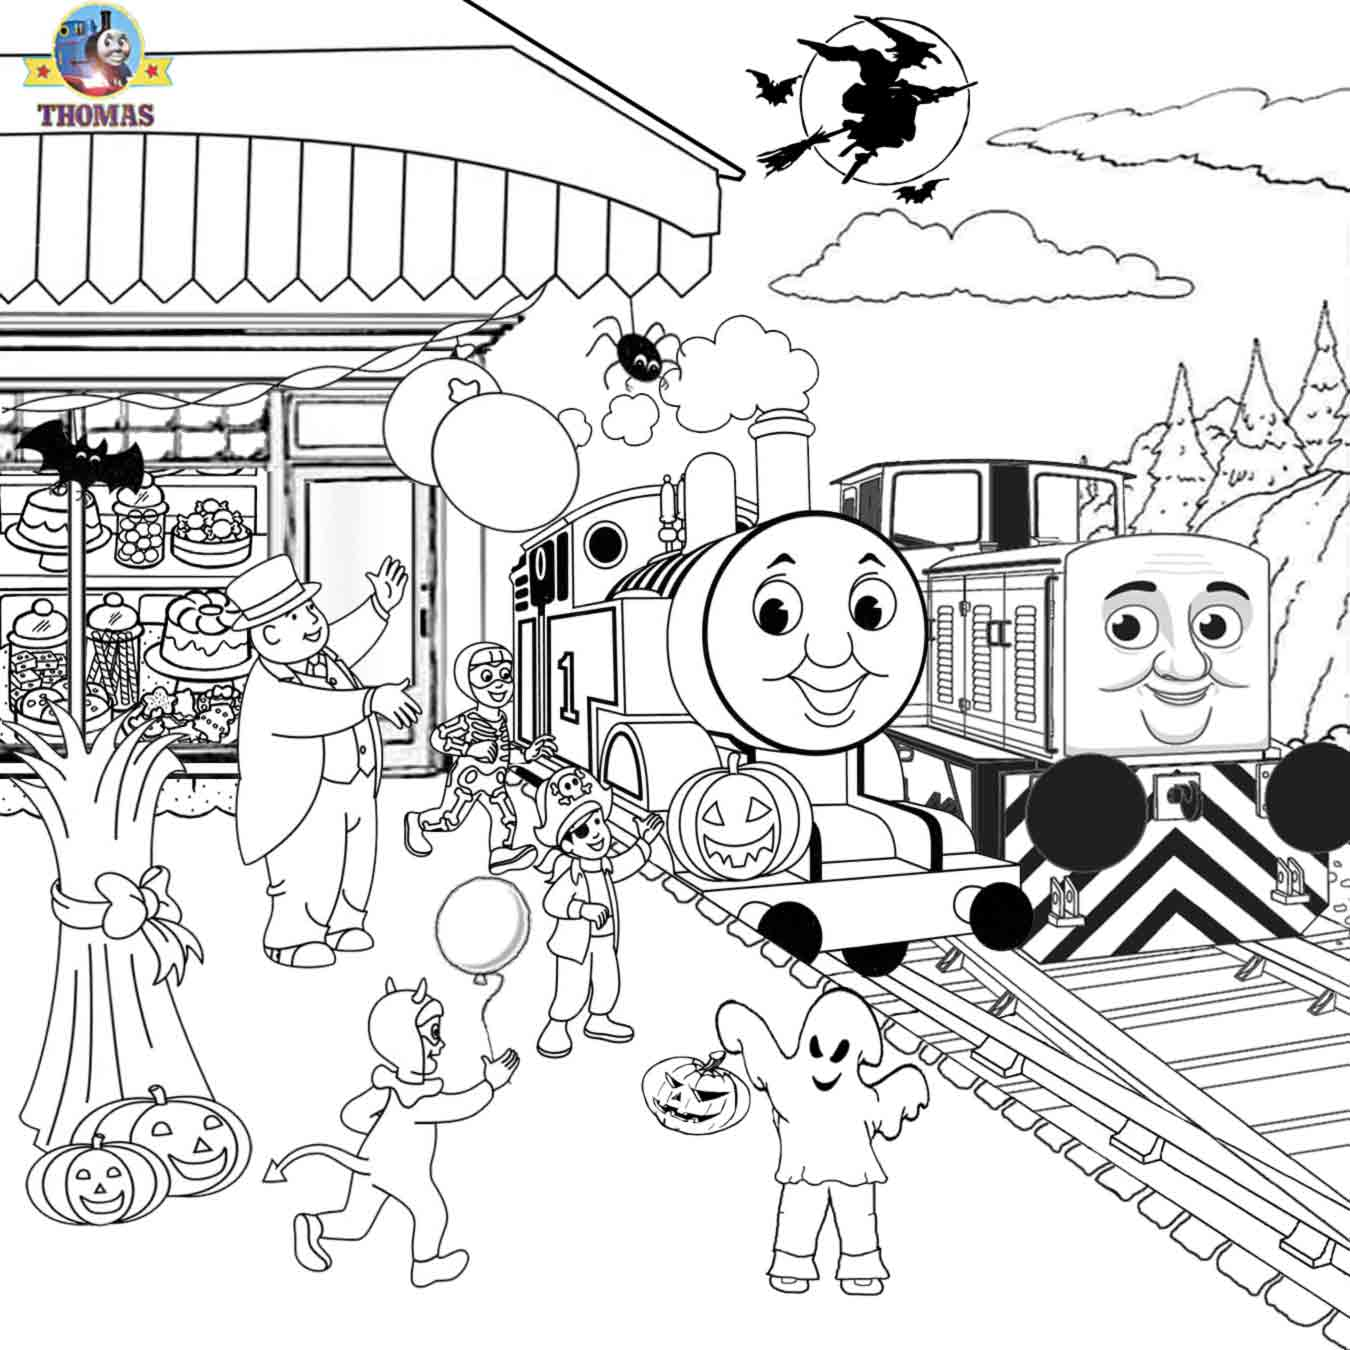 1350x1350 Free Printable Halloween Ideas Kids Activities Thomas Coloring